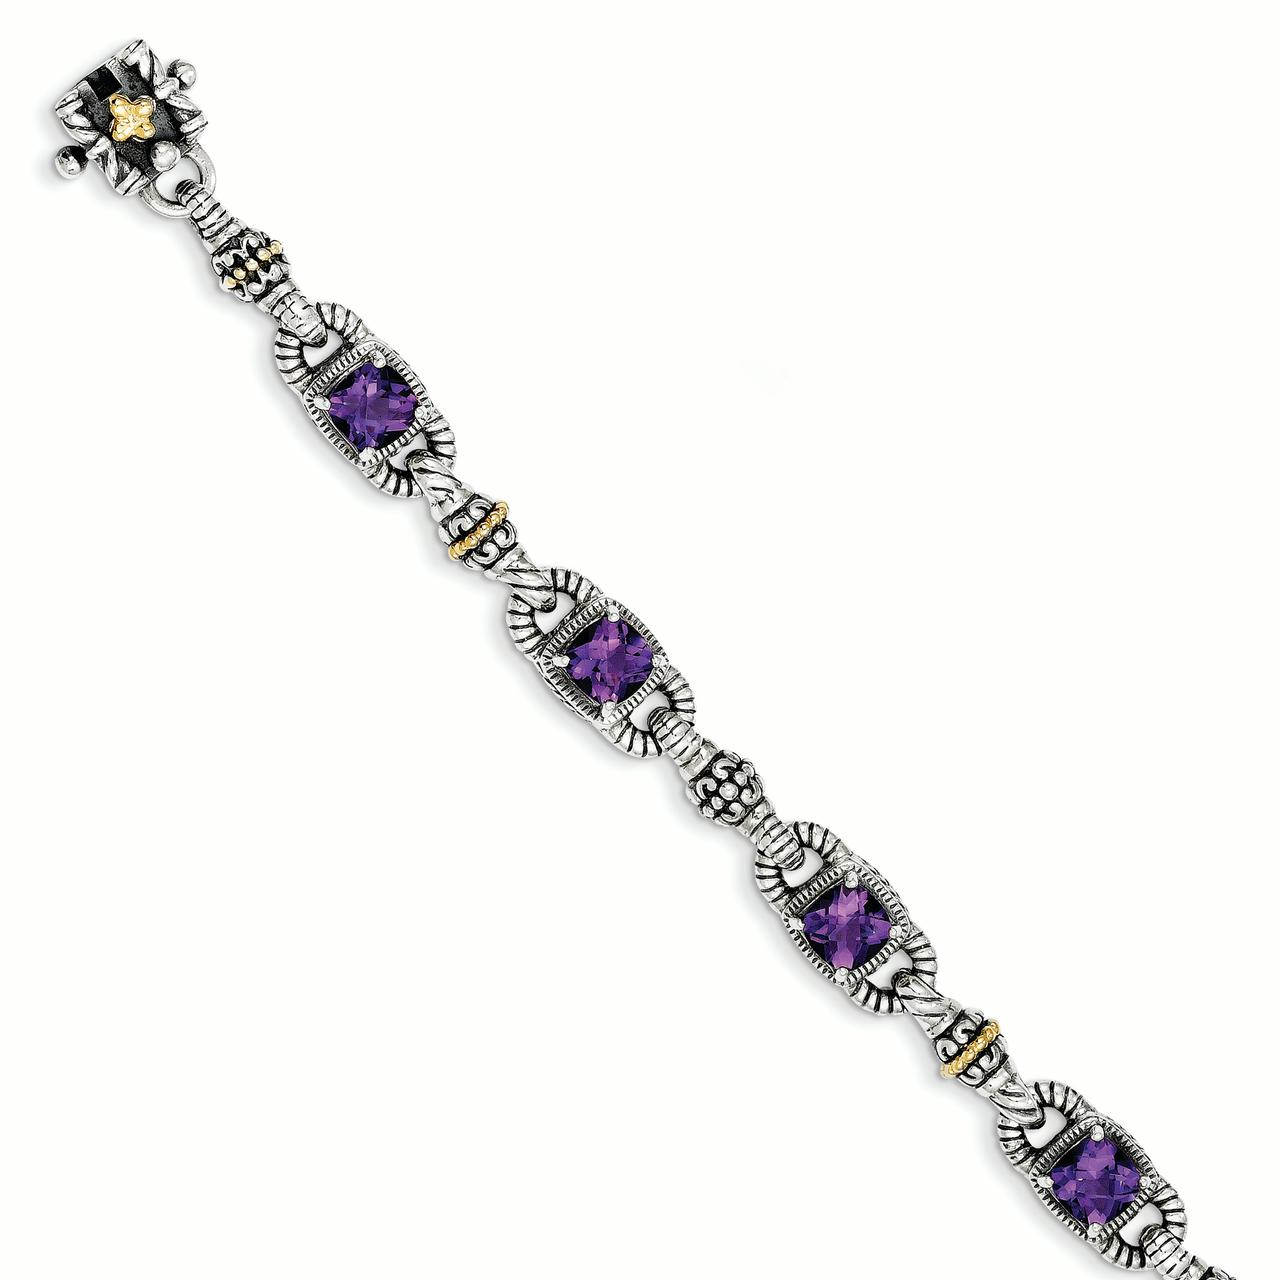 14k  Silver Two-Tone w  Amethyst Antiqued Bracelet by